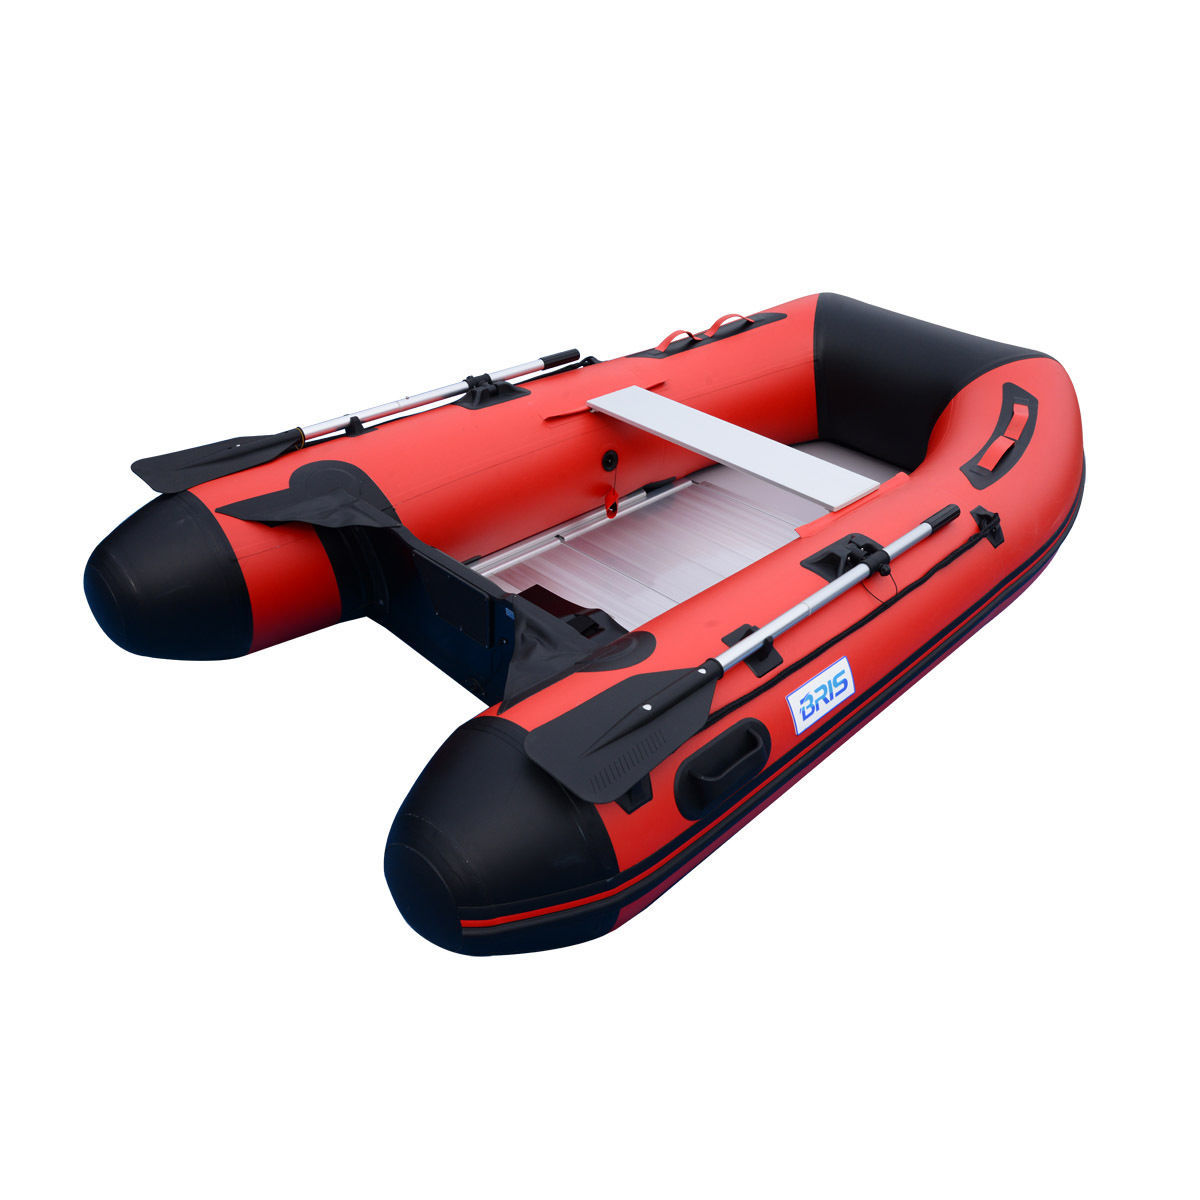 BRIS 8.8ft Inflatable Boat For Fishing Inflatable Tender Dinghy Pontoon Raft- Inflatable Boat